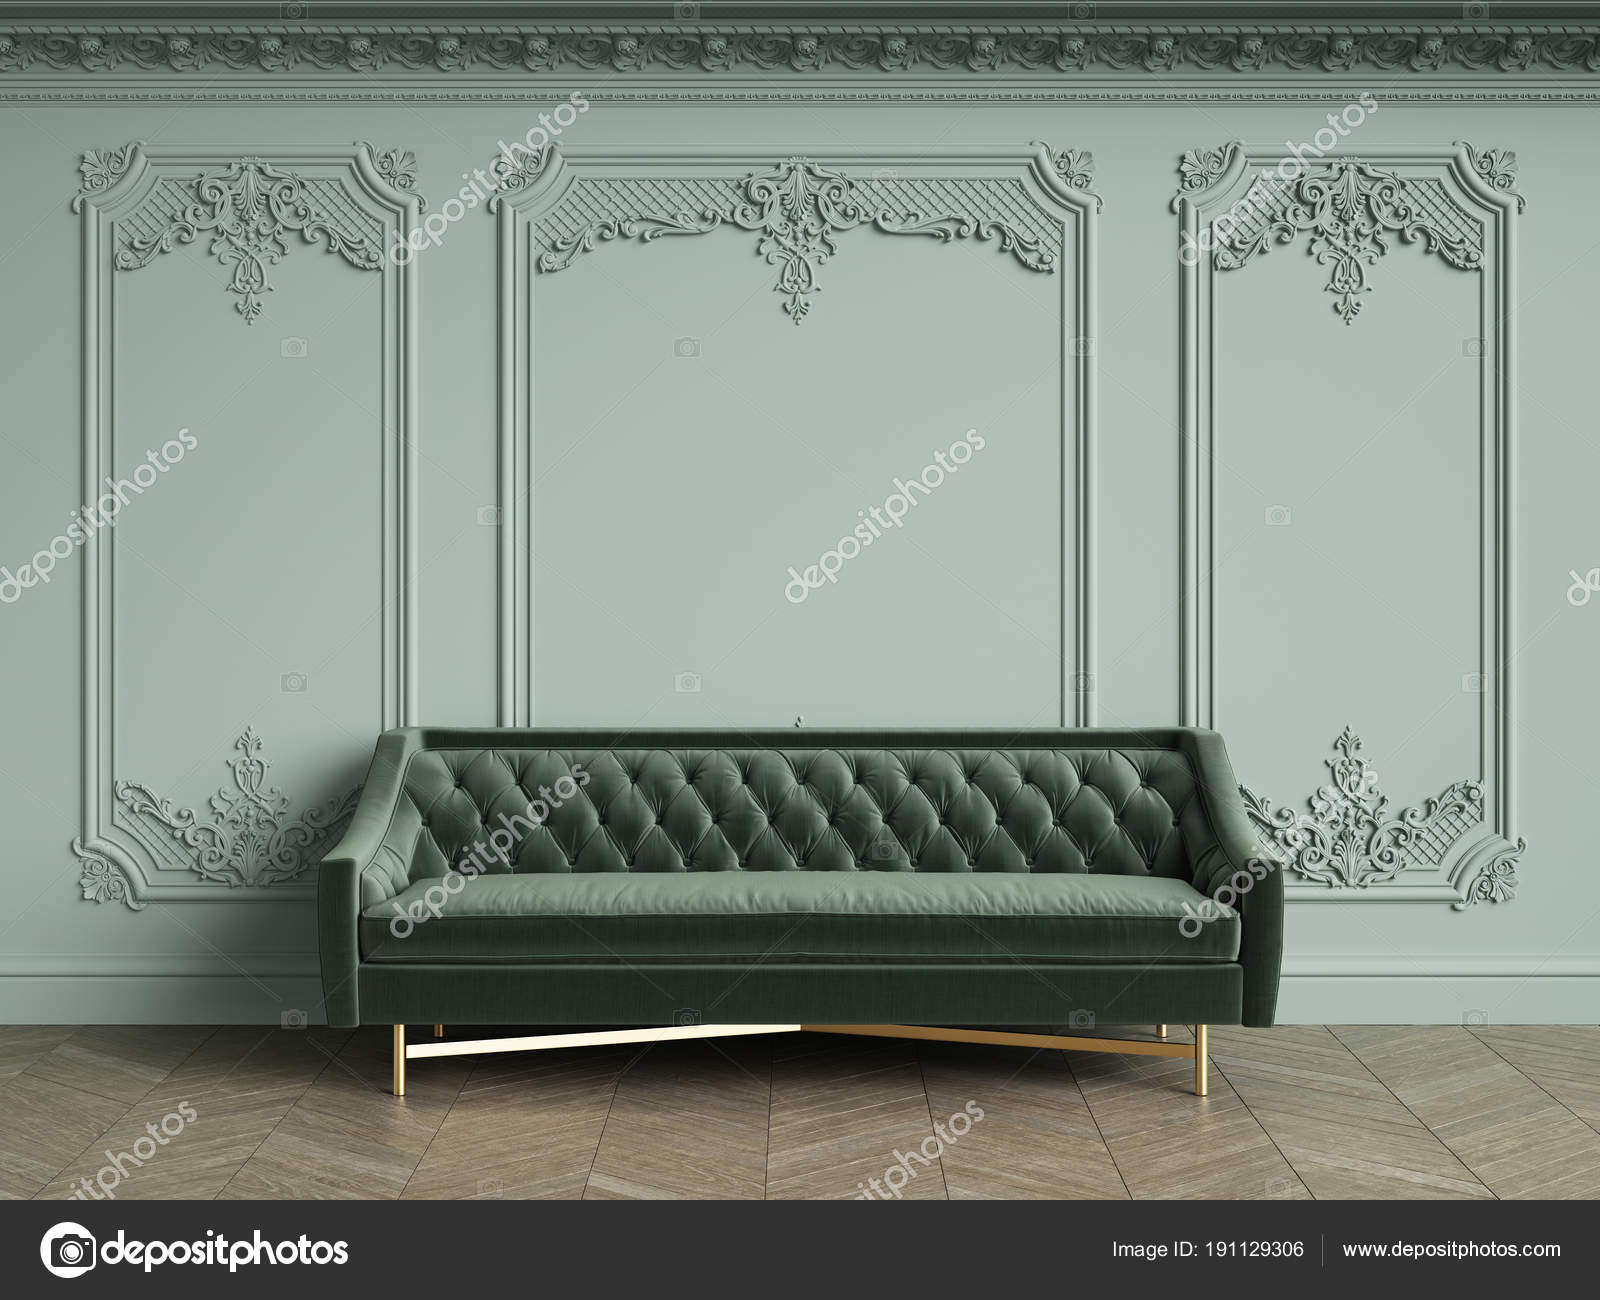 Green Tufted Sofa Classic Vintage Interior Copy Space Pale Olive U2014 Stock  Photo